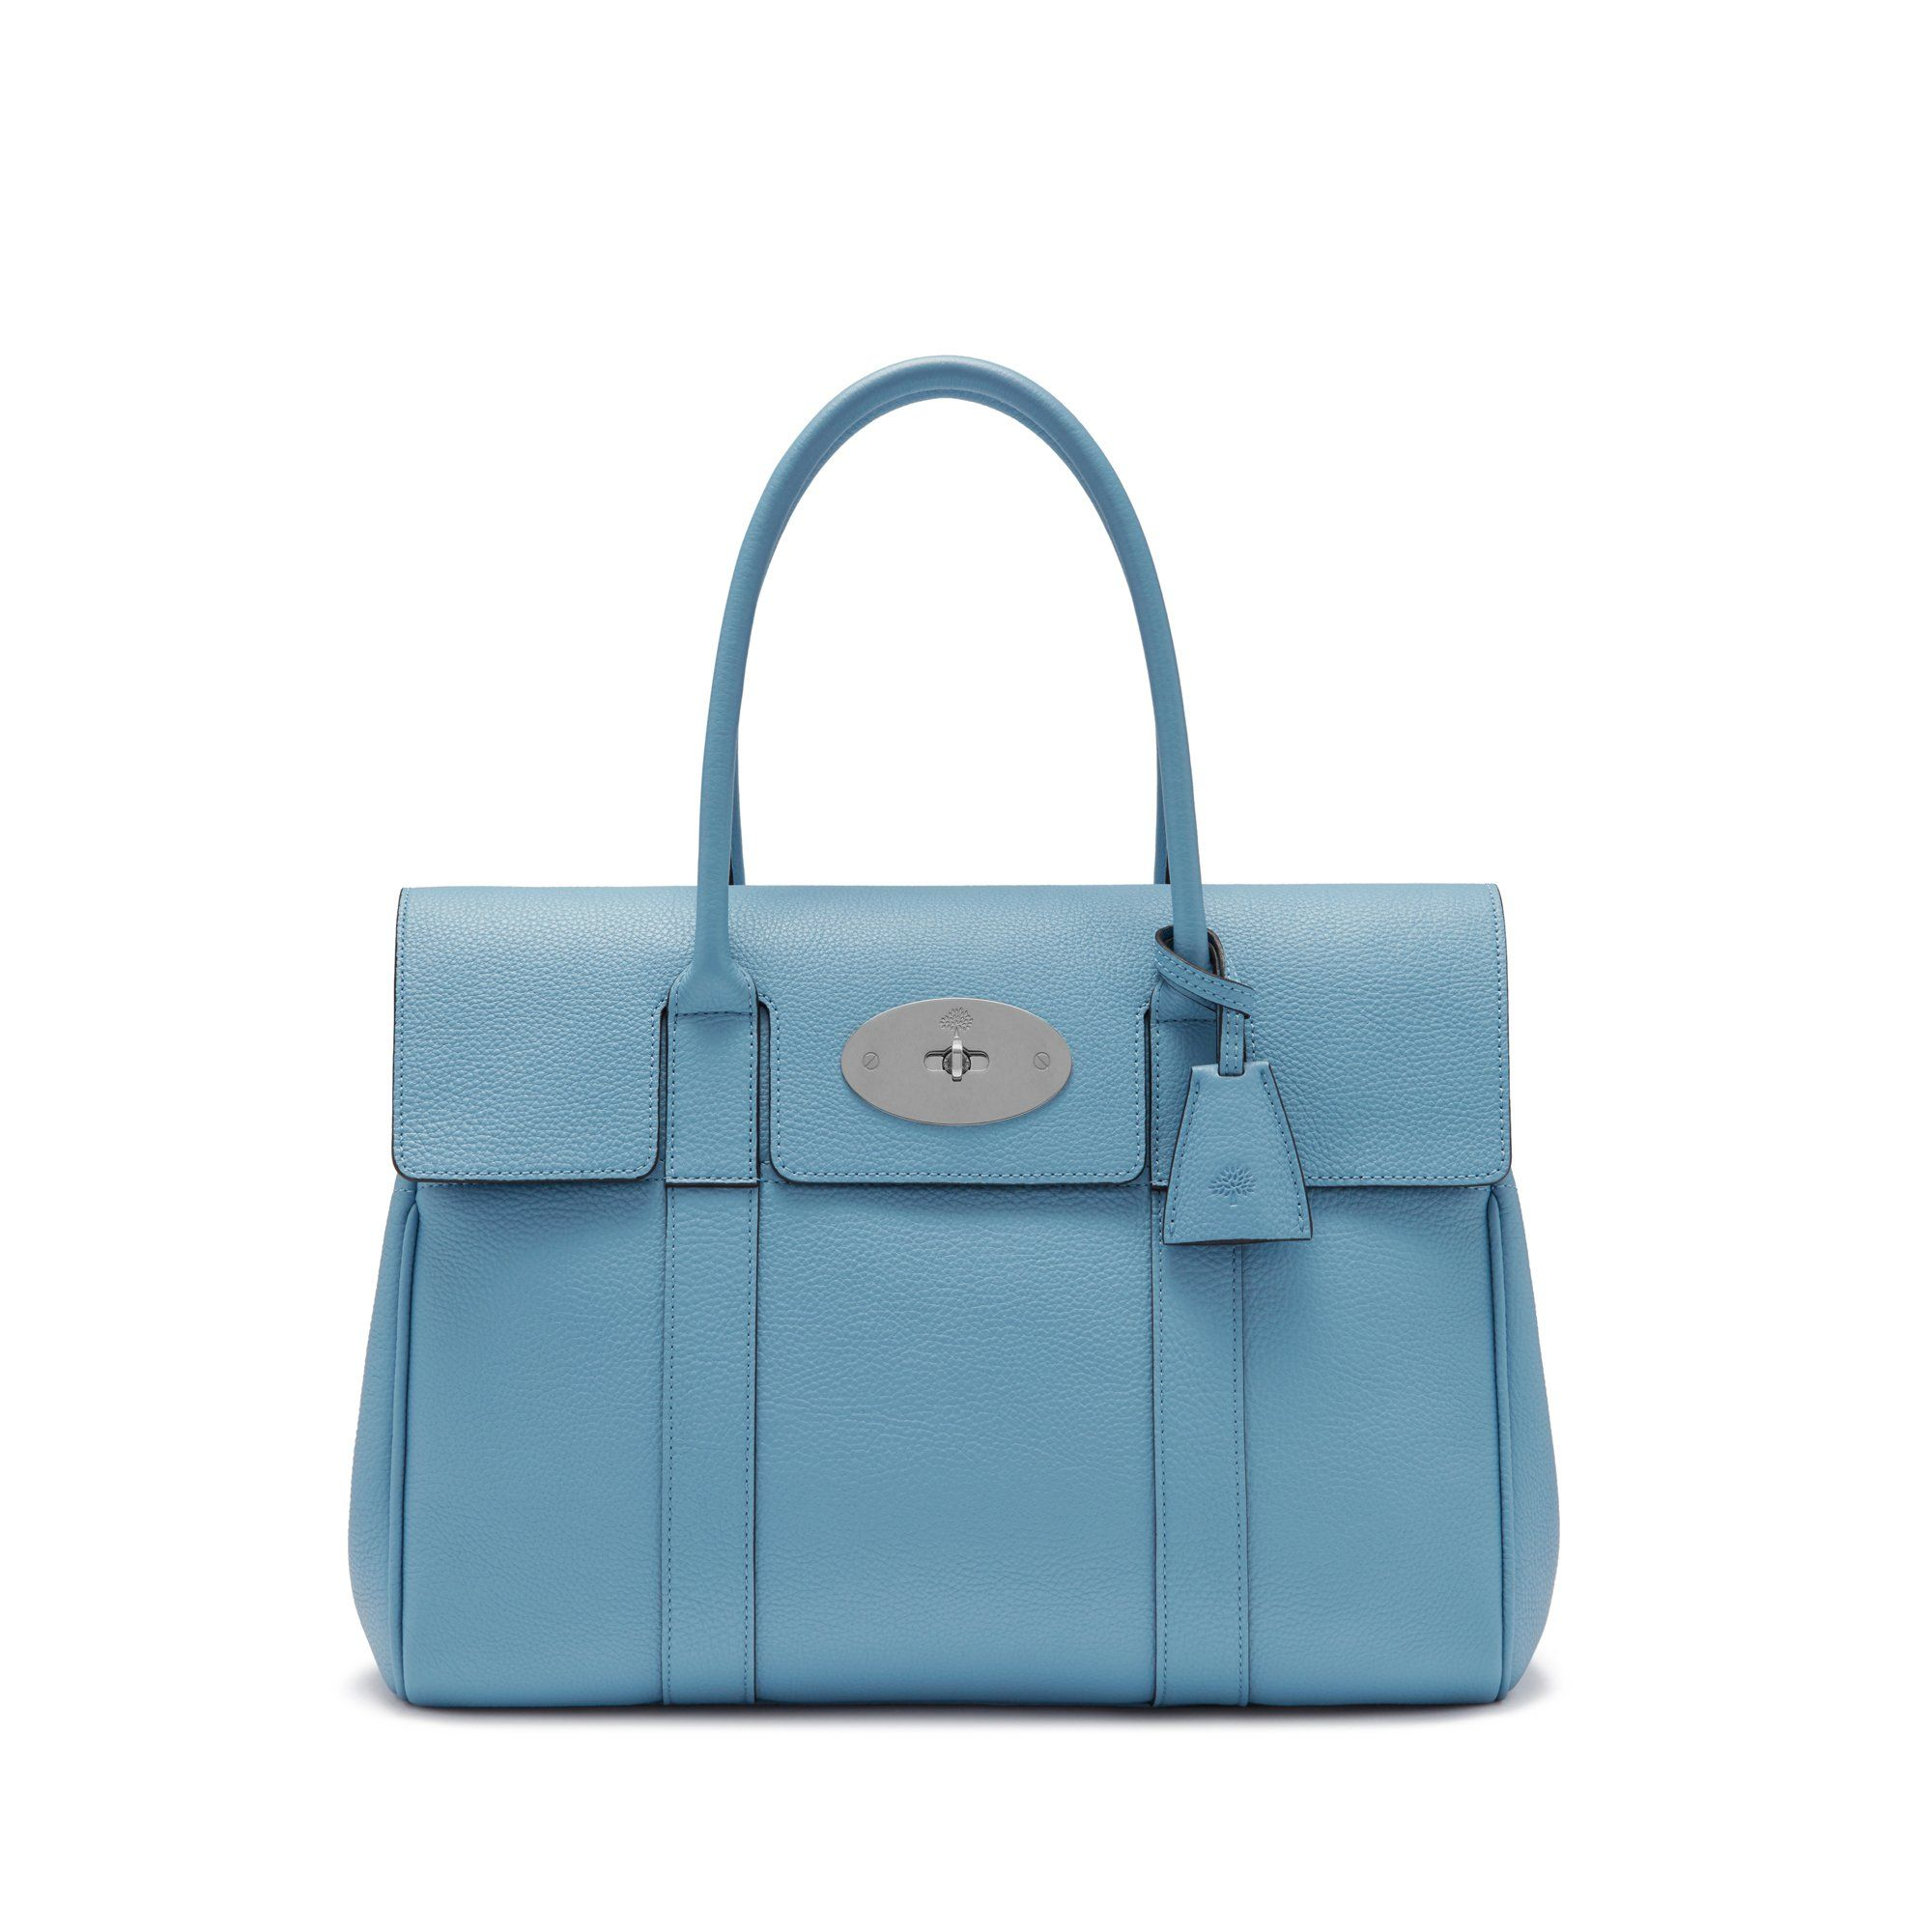 481b5456f7 Totes | Women's Bags | Women | Mulberry